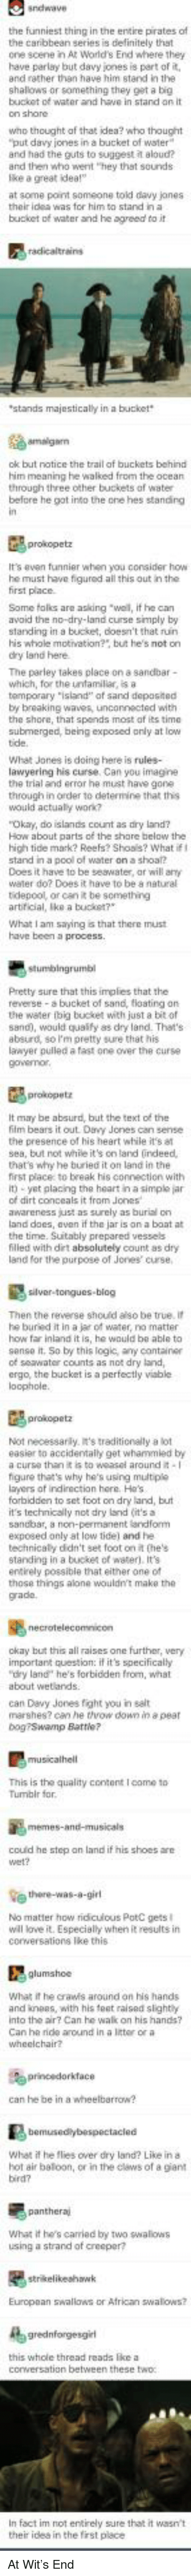 """Hot Air: the funniest thing in the entire pirates of  one scene in At World's End where they  have parlay but davy jones is part of it  and rather then have him stand in thhe  shallows or something they get a big  bucket of water and have in stand on it  who thought of that idea? who thought  put davy jones in a bucket of water  and had the guts to suggest aloud?  and then who went """"hey that sounds  at some point someone toid davy janes  bucket of water and he agreed to it  tis  ok but notice the trail of buckets behind  before he got into the one hes standing  It's even funnier when you consider how  he must have figured all this out in the  Some folic are asking wel, if he can  avaid the no-dry-land curse simply by  standing in a bucket, doesn't that ruin  his whole motvation?"""" but he's not on  The parley takes place on a sandbar  the shore, that spends most of its time  What Jones is doing here is rules-  the trial and error he must have gone  through in order to determine that this  """"Okay, do islands count as dry land?  How about parts of the share below the  high tide mark? Reefs? Shoas? What if  Does it have to be seawater, ar will ay  water do? Does it have to be a natural  Pretty sure that this implies that the  the water toig bucket with just a bit of  sand), would quaify as dry land. That's  absurd, so I'm pretty sure that his  lawyer pulled a fast one over the curse  It may be absurd, but the text of the  fitm bears it out Davy Jones can sense  the presence of his heart while it's a  sea, but not whie it's on land indeed  that's why he buried it on land in the  first place to break his connection with  it)-yet placing the heart n a simplo jar  land does, aven ifth0 jar is  a boat at  filled with dirt absolutely count as dry  land for the purpose of Jonescrse  Then the reverse should aso be true. i  he buried it in a jer of water, no matter  how far inland it is, he would be able to  senso it. So by this logia, any container  a curse than it is to weasel a"""